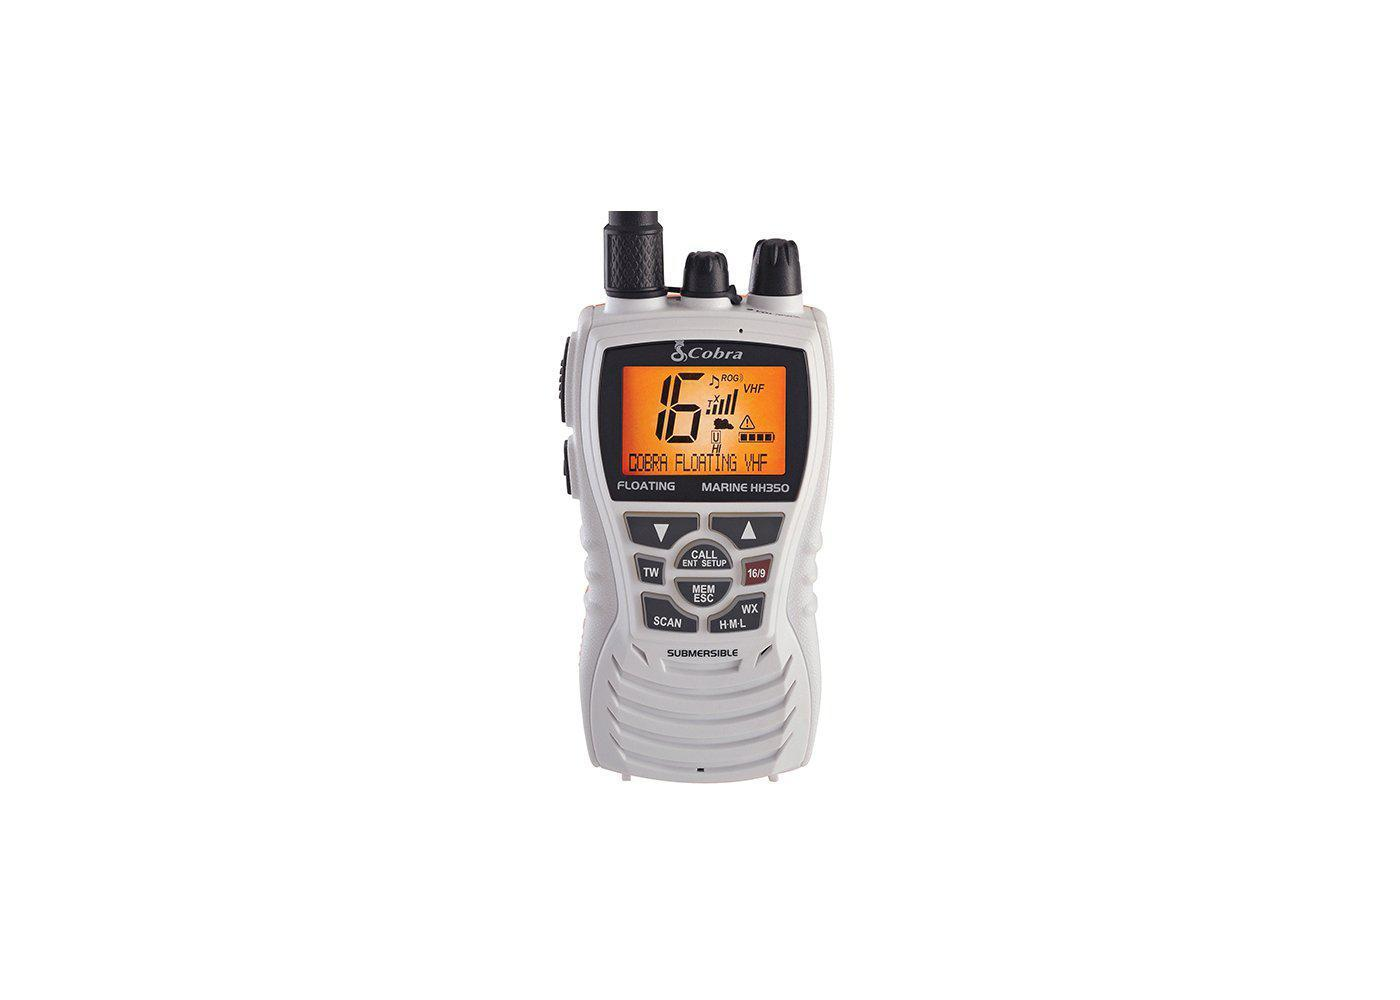 MR HH350W FLT - 6 Watt Floating VHF Radio, White - cobra.com